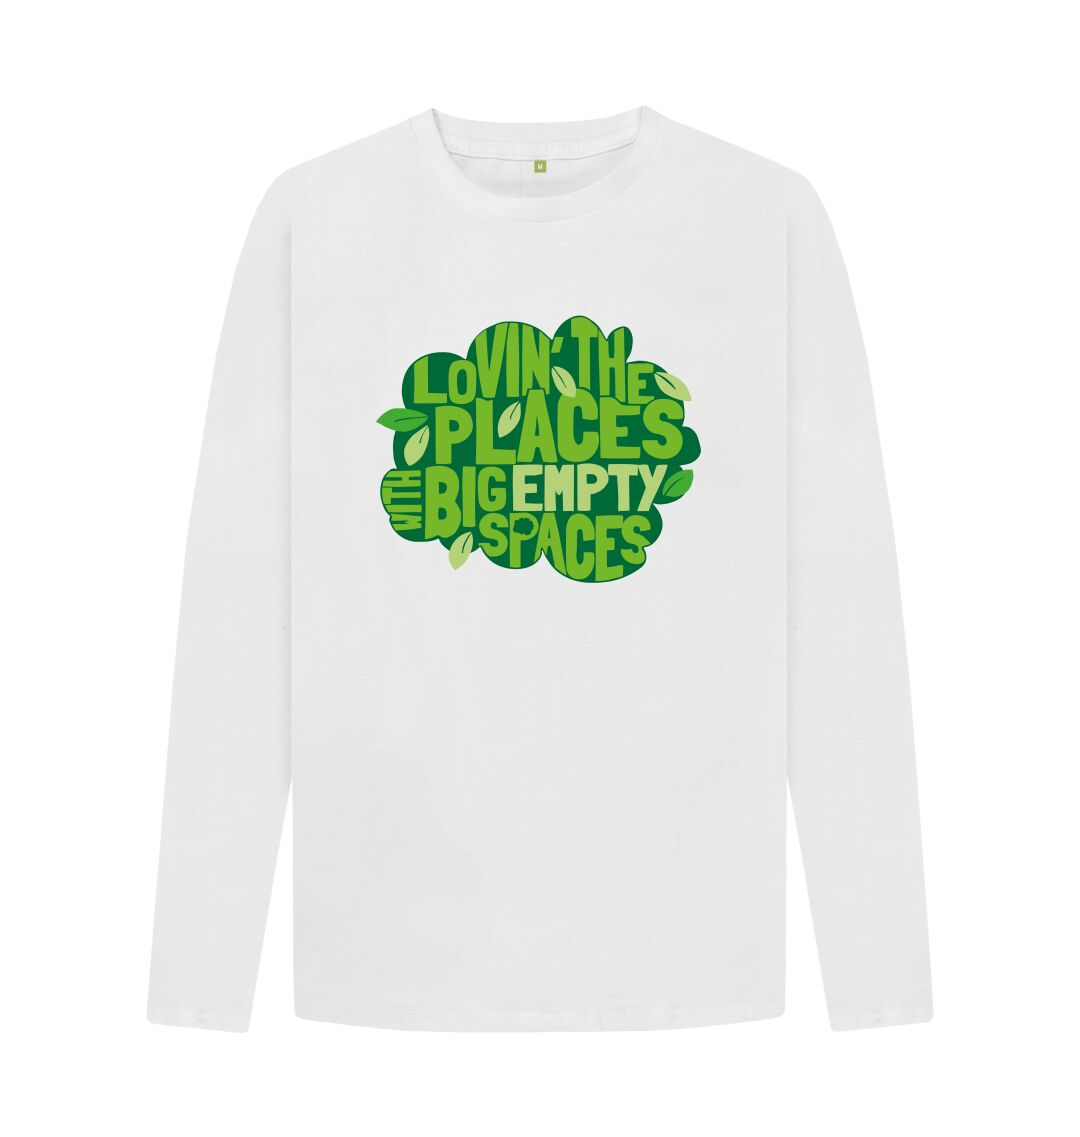 White Men's \/ Unisex Places with Spaces Long Sleeved Tee